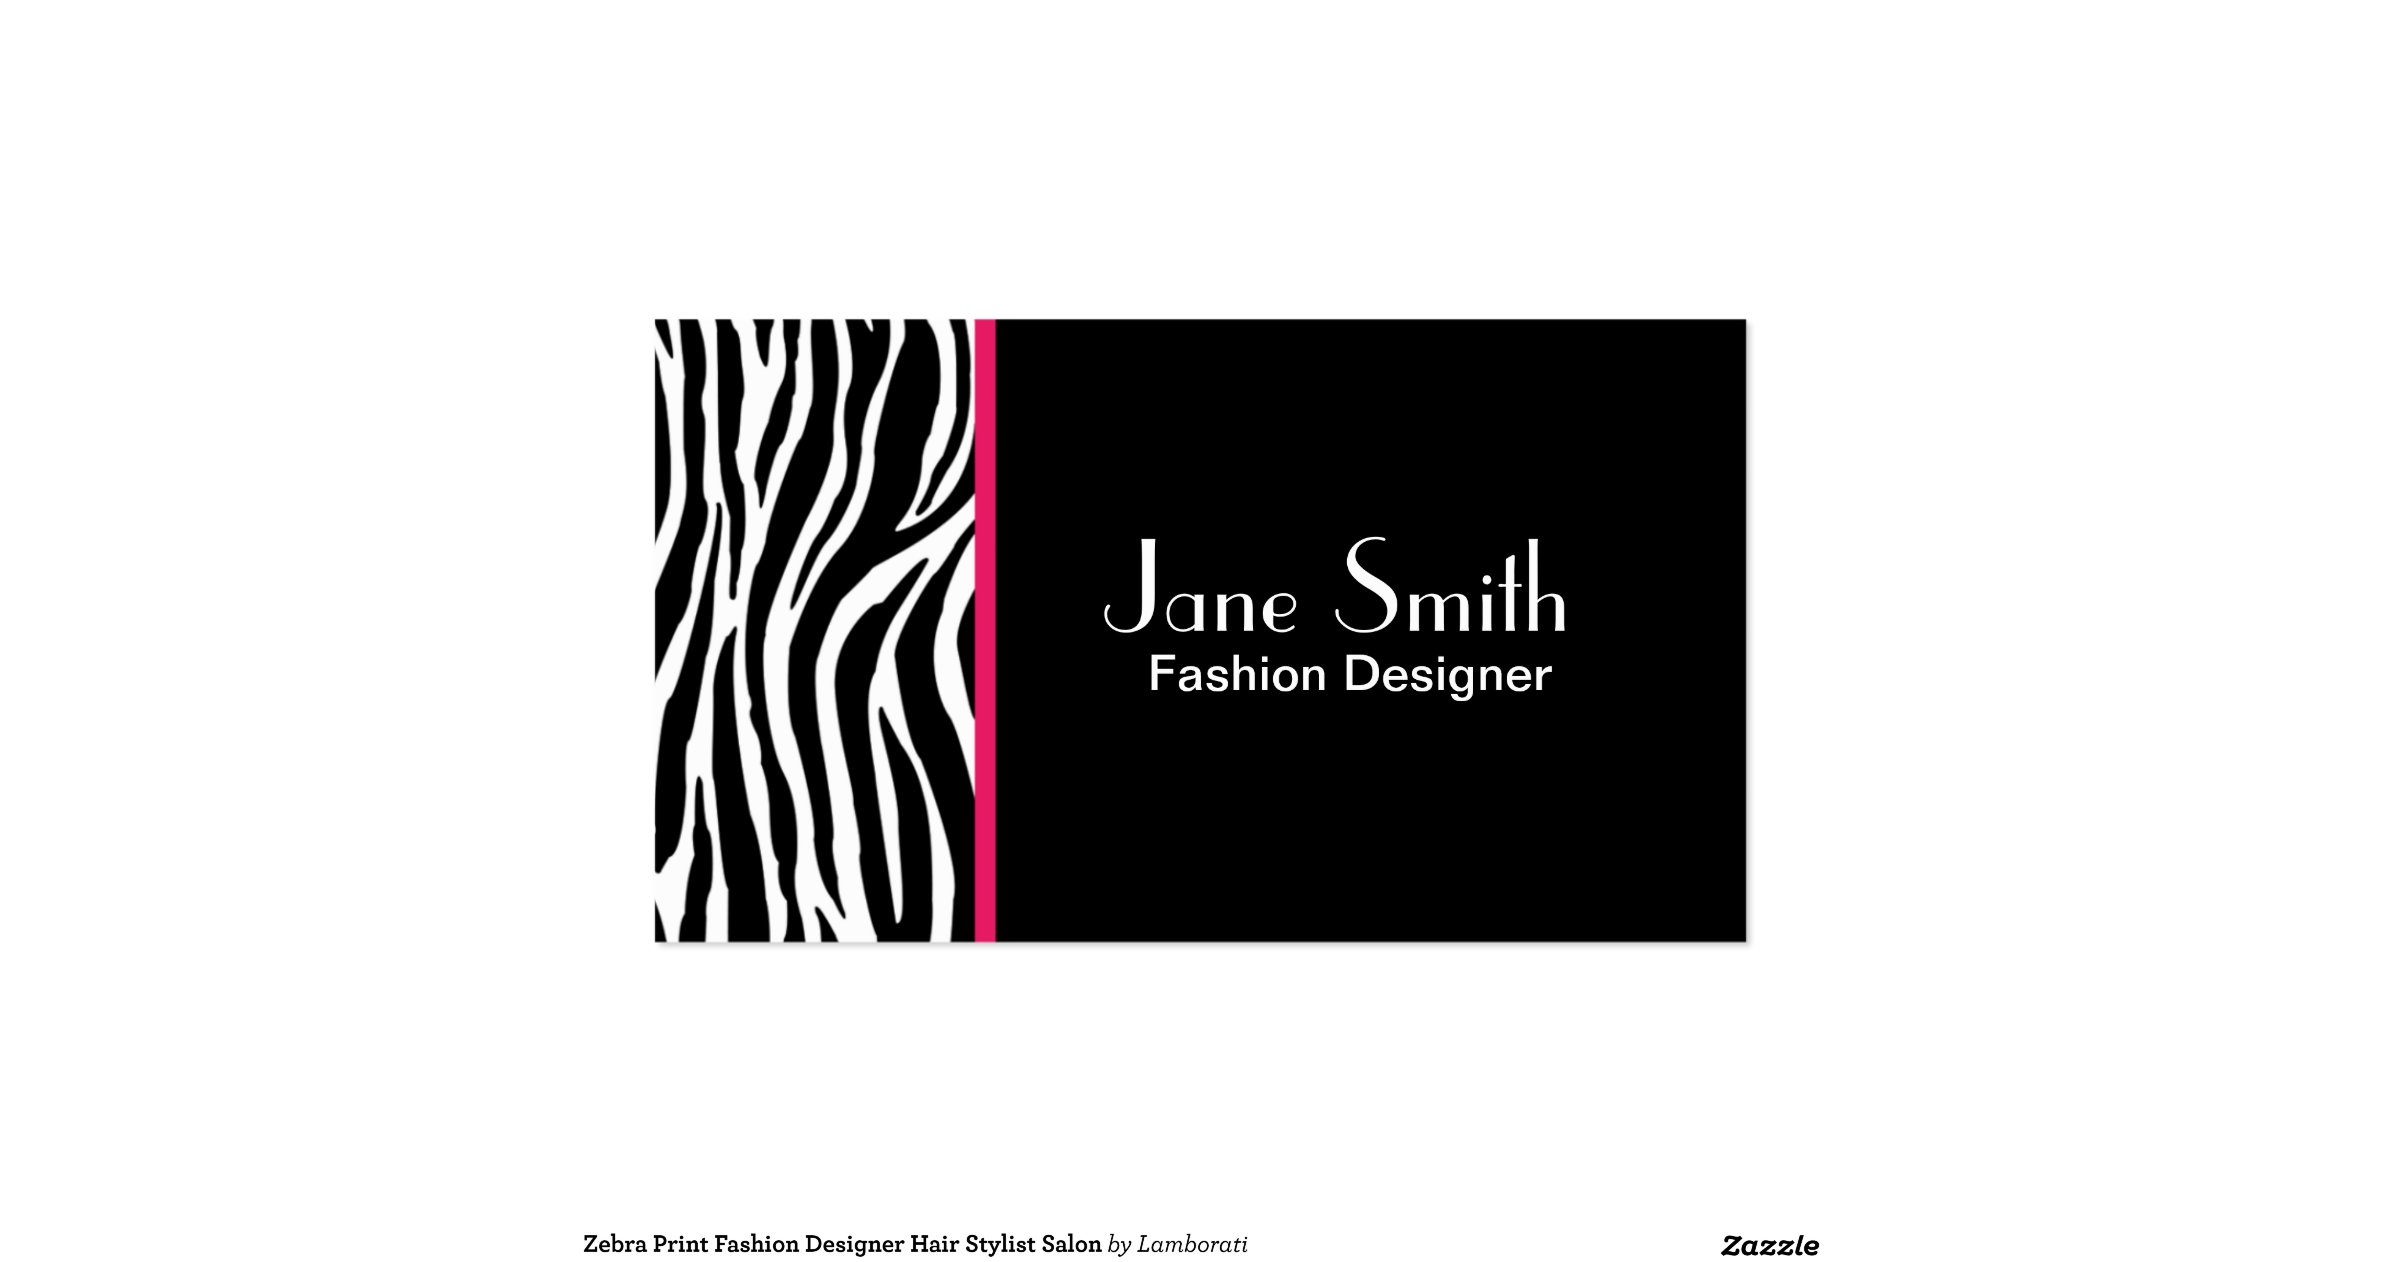 Zebra Print Fashion Designer Hair Stylist Salon Double Sided Standard Business Cards Pack Of 100